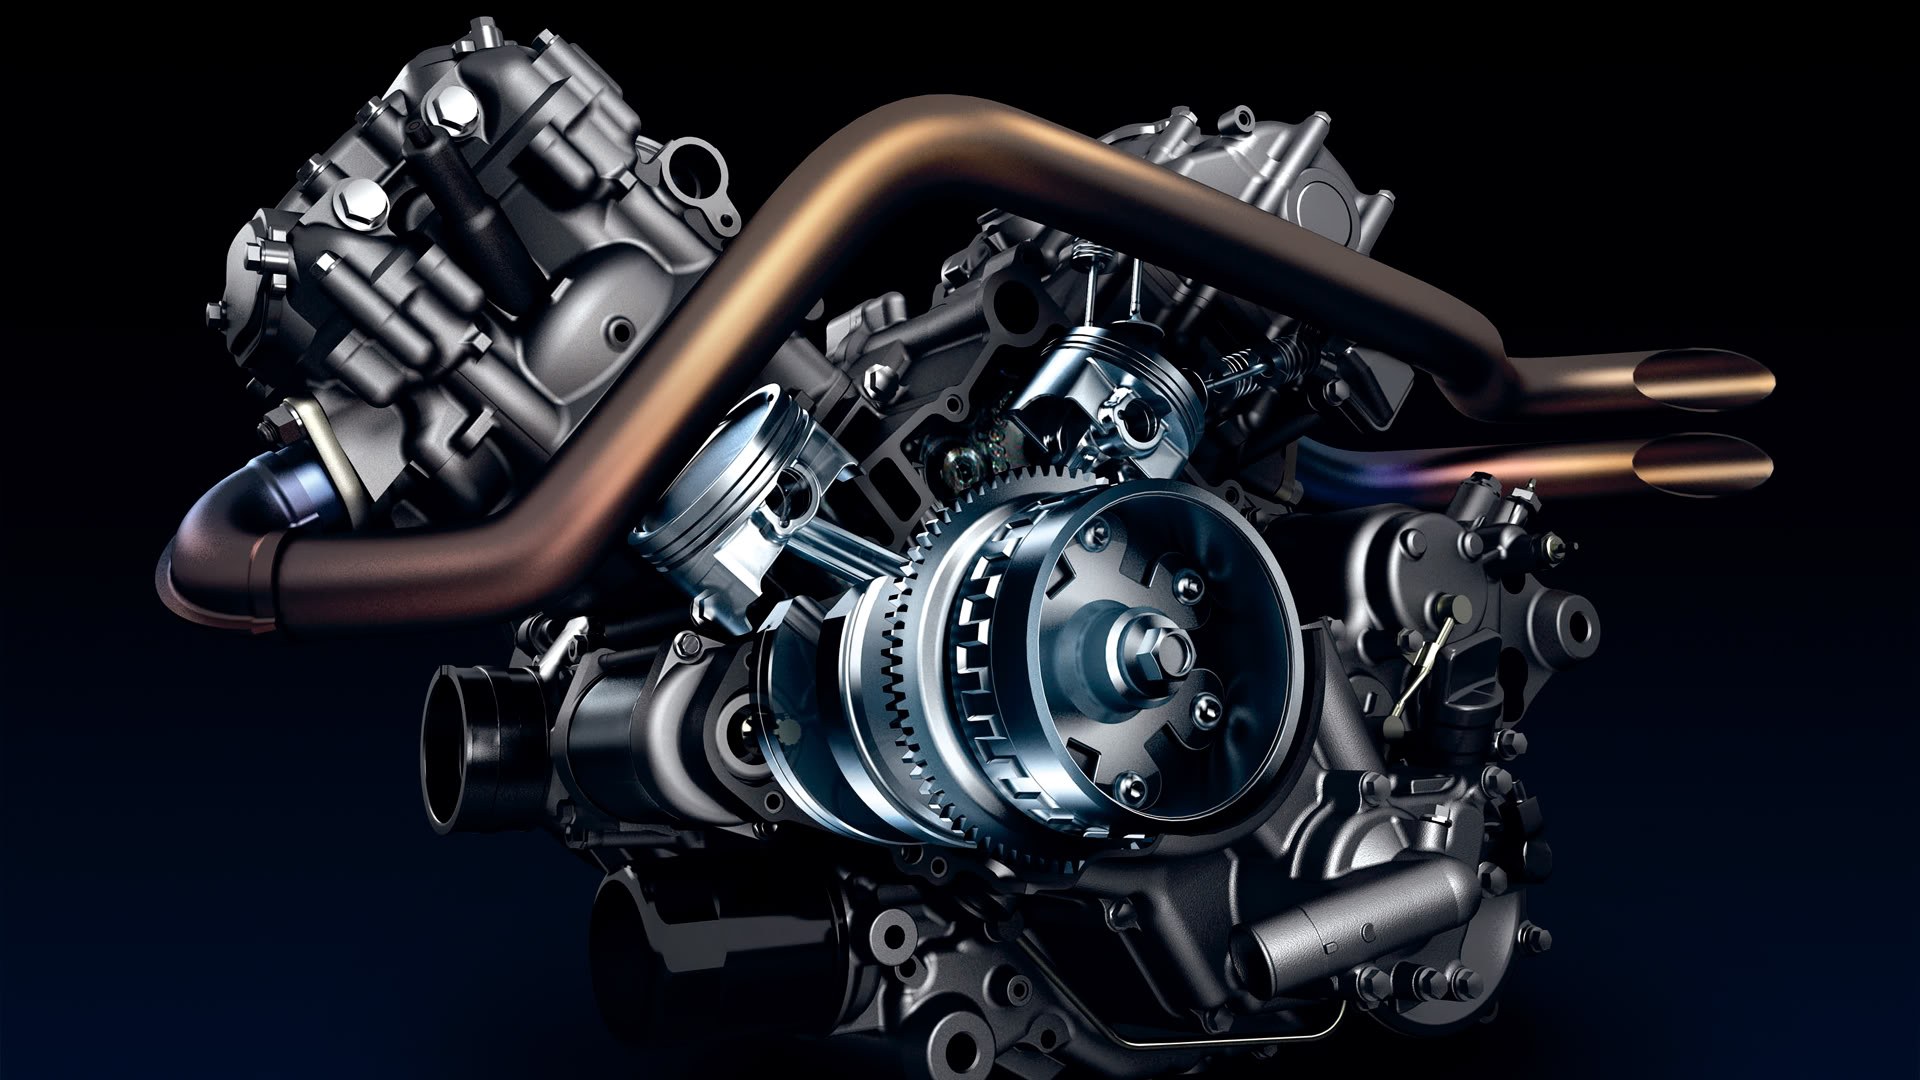 hd engine wallpapers engine backgrounds engine images  desktop